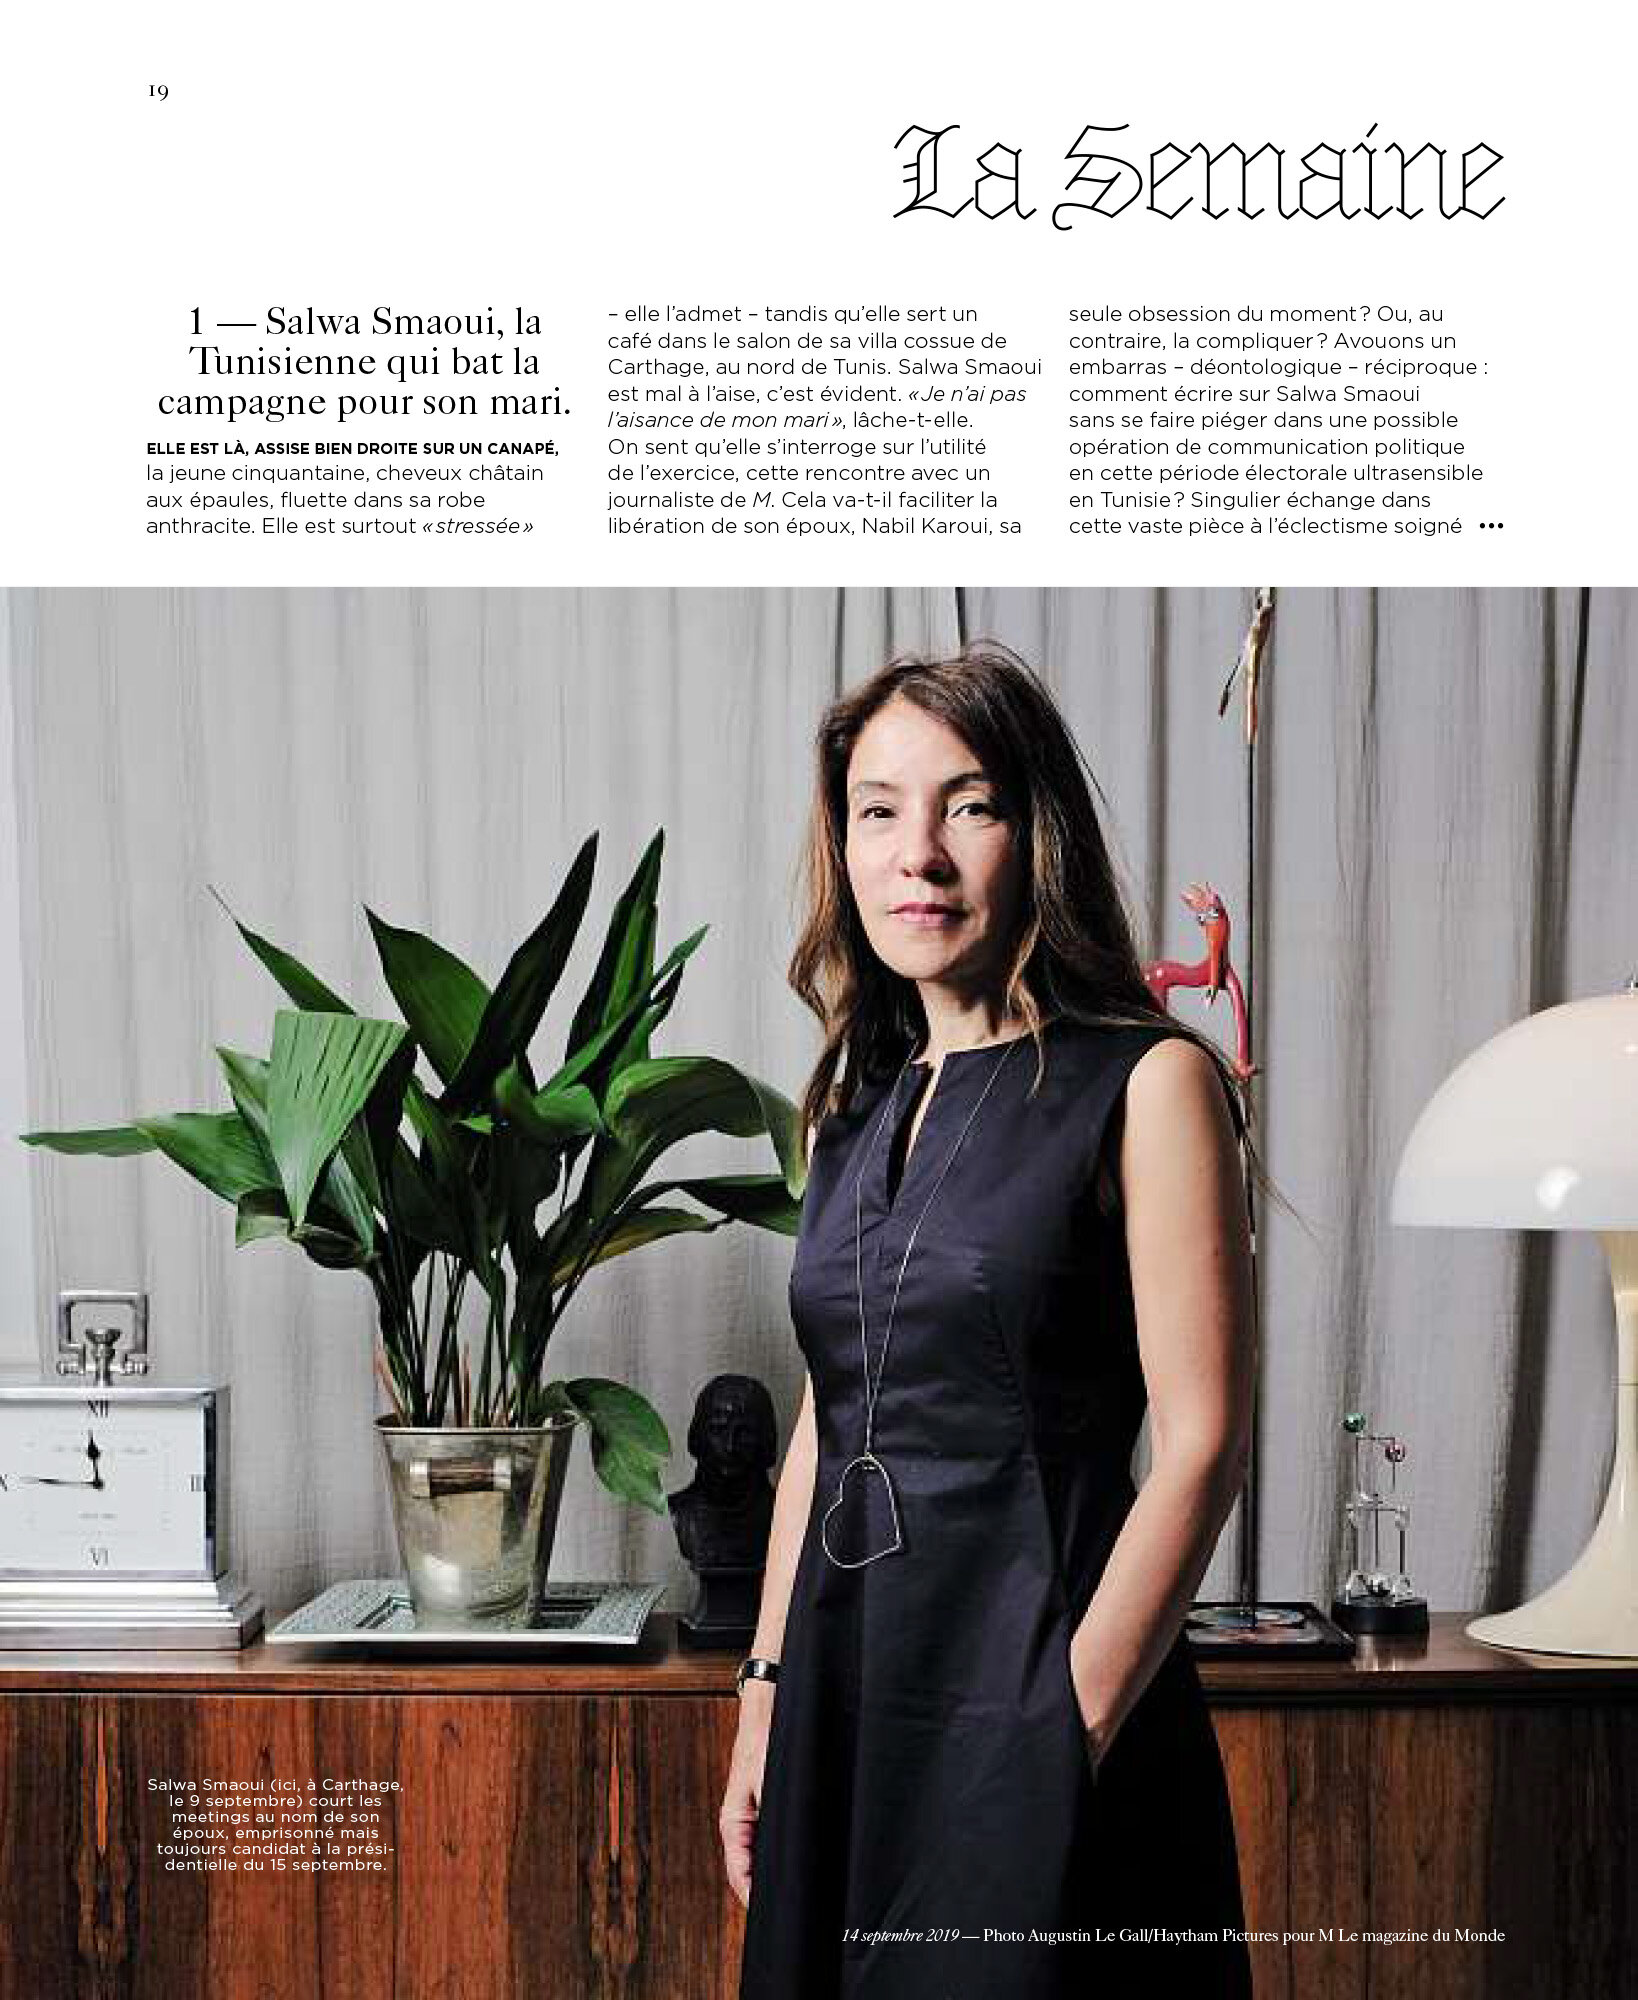 Salwa Smaoui, Nabil Karoui's wife, candidate in the early presidential elections in Tunisia and currently in pre-trial detention for tax evasion and money laundering, since 23 August 2019. For M le Magazine du Monde. Sept, 14, 2019.